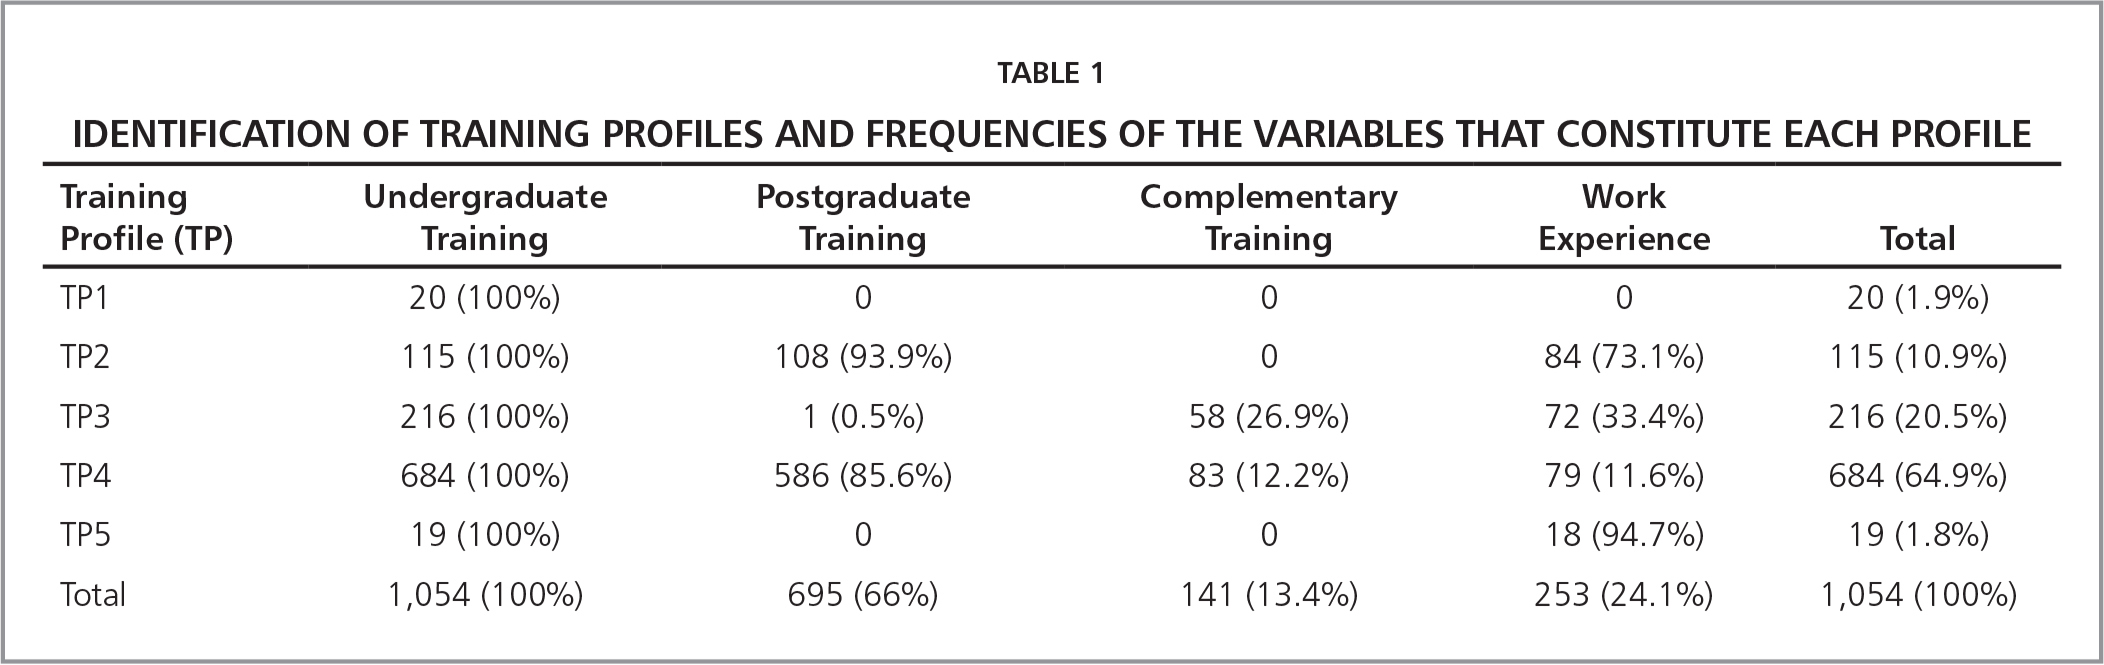 Identification of Training Profiles and Frequencies of the Variables that Constitute Each Profile